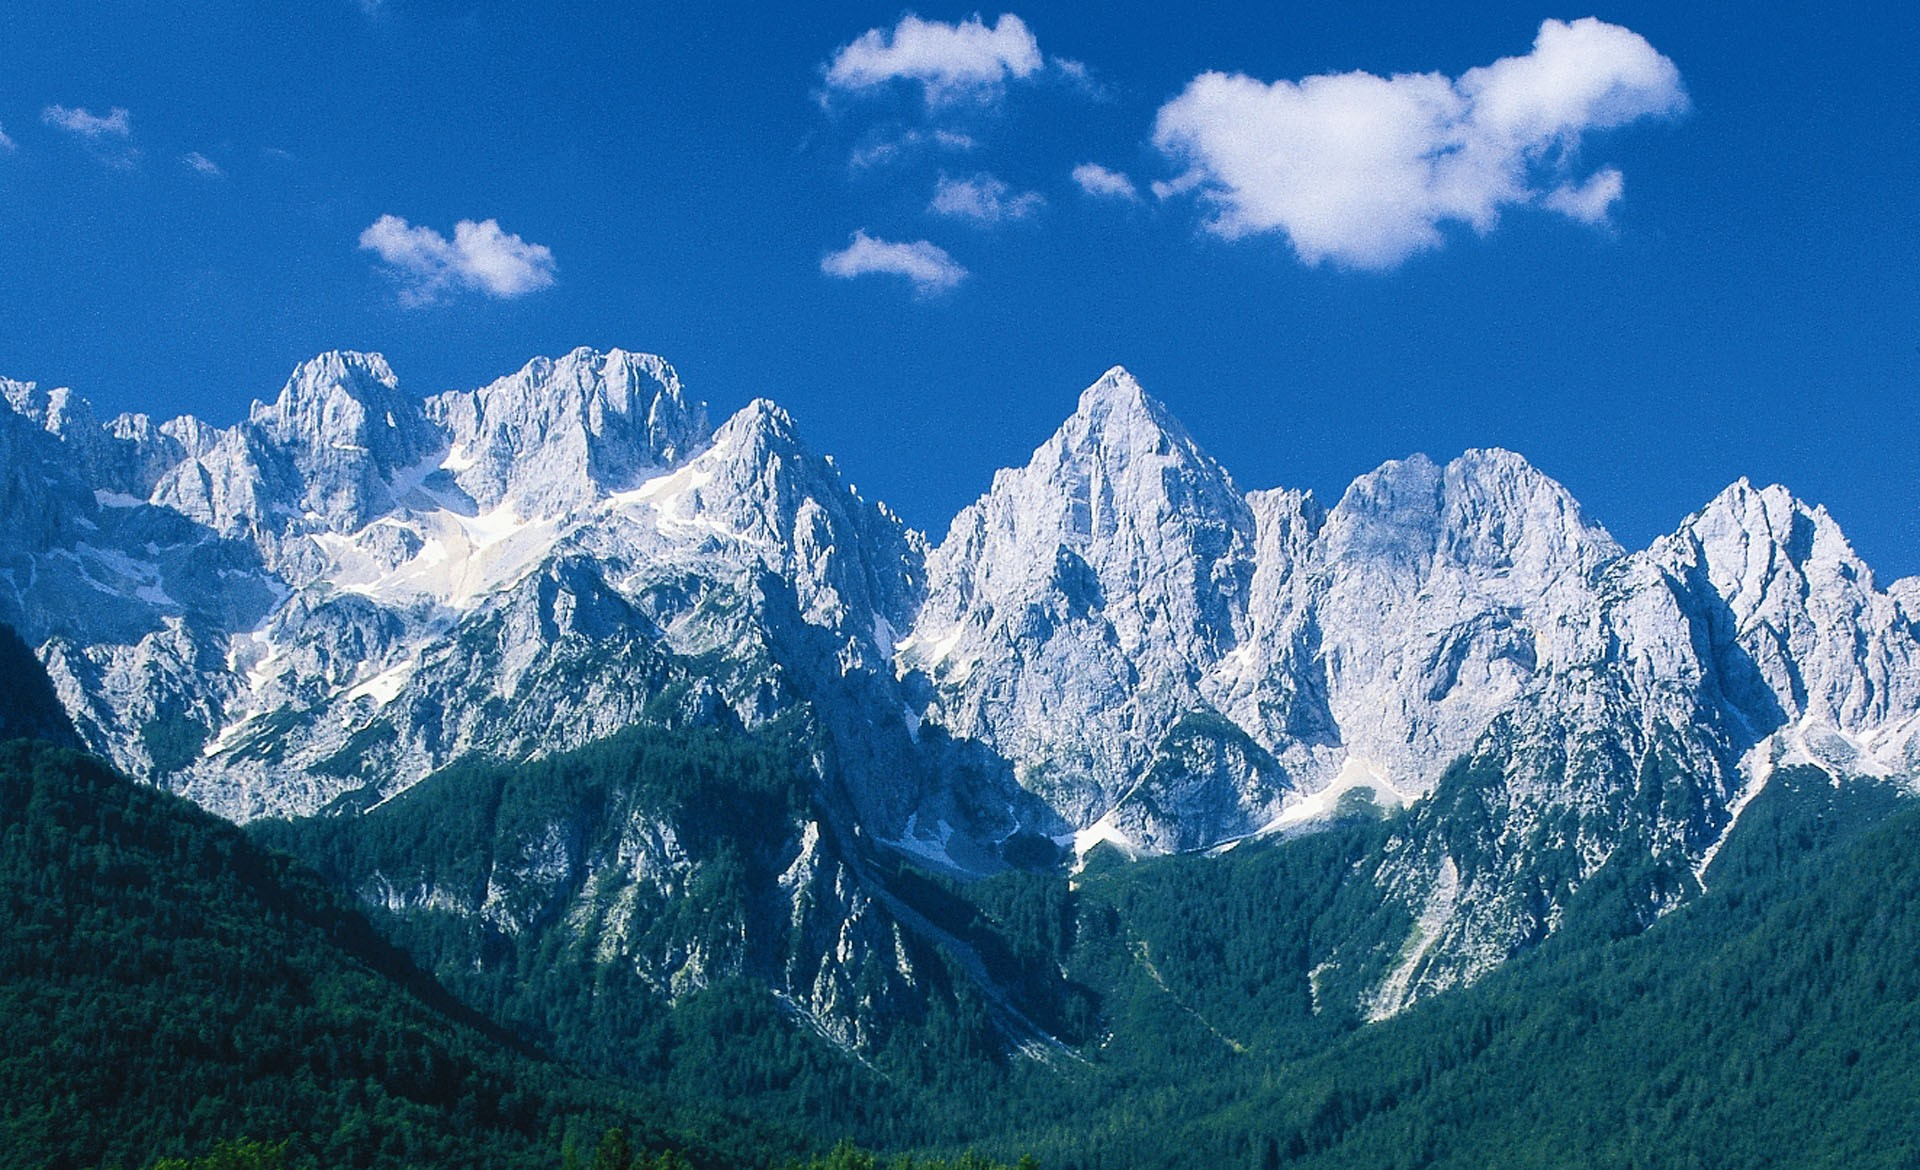 The Triglav National Park